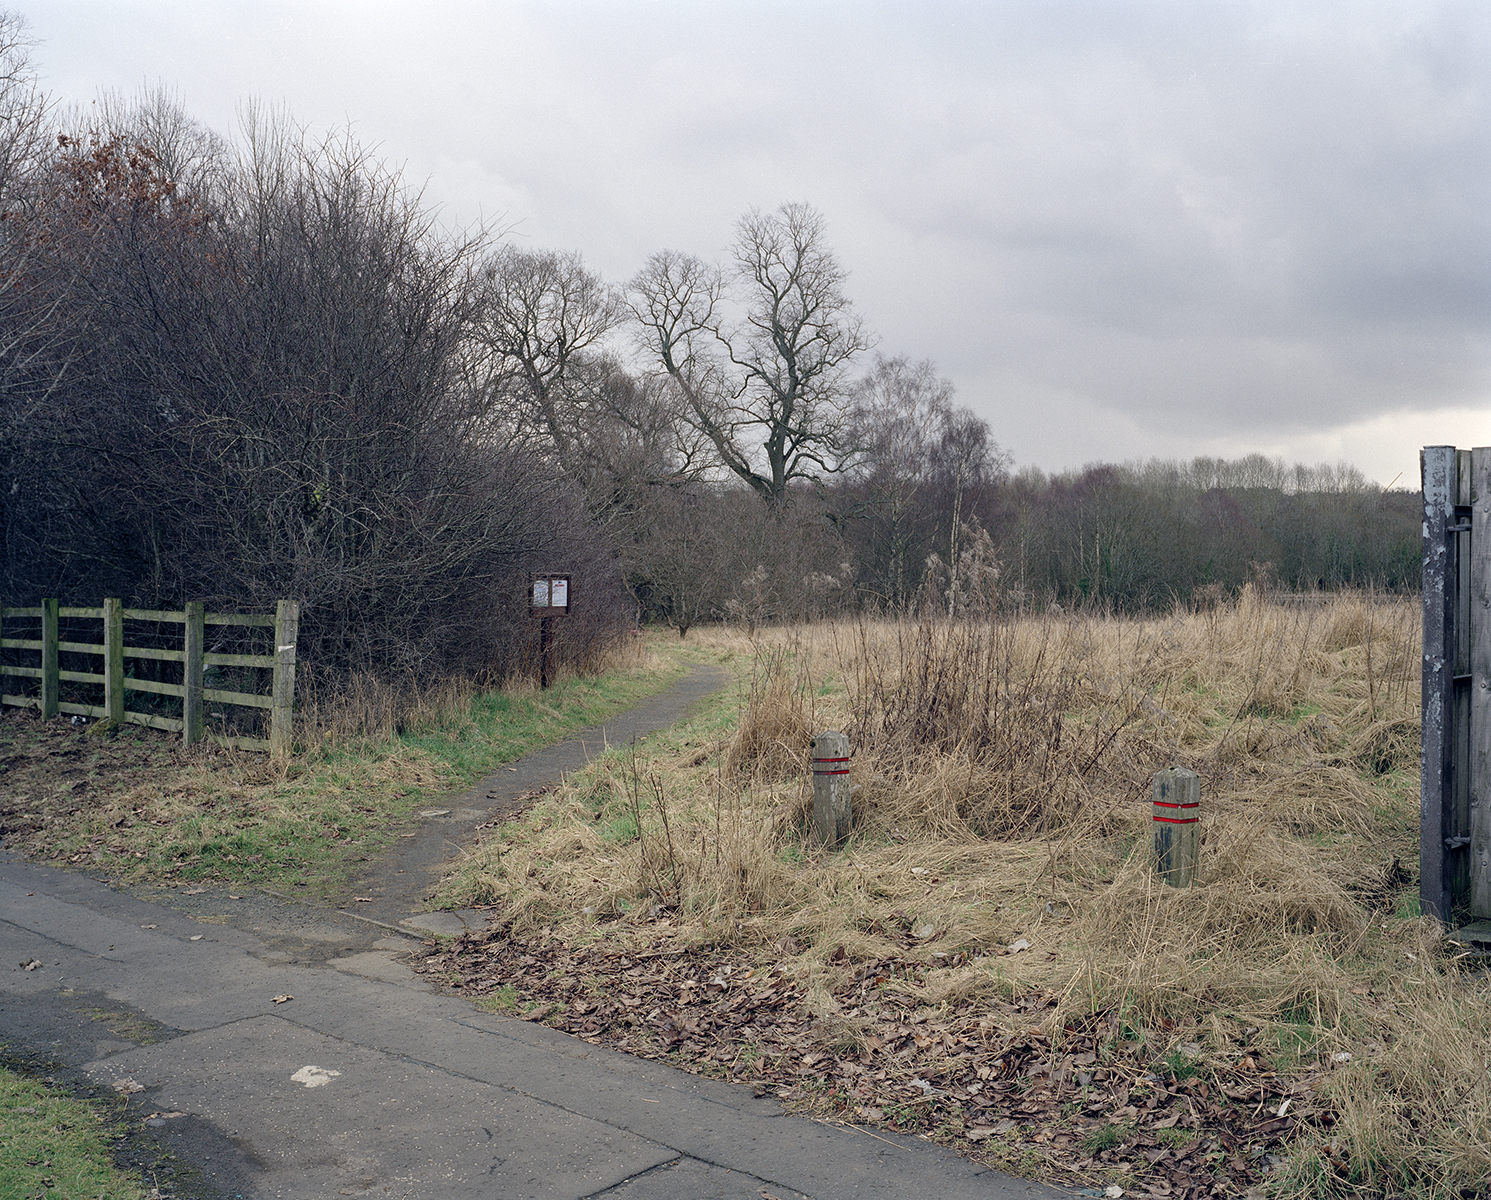 1. Start in Hamilton by the roundabout and Motherwell Road, take the footpath through South Haugh.